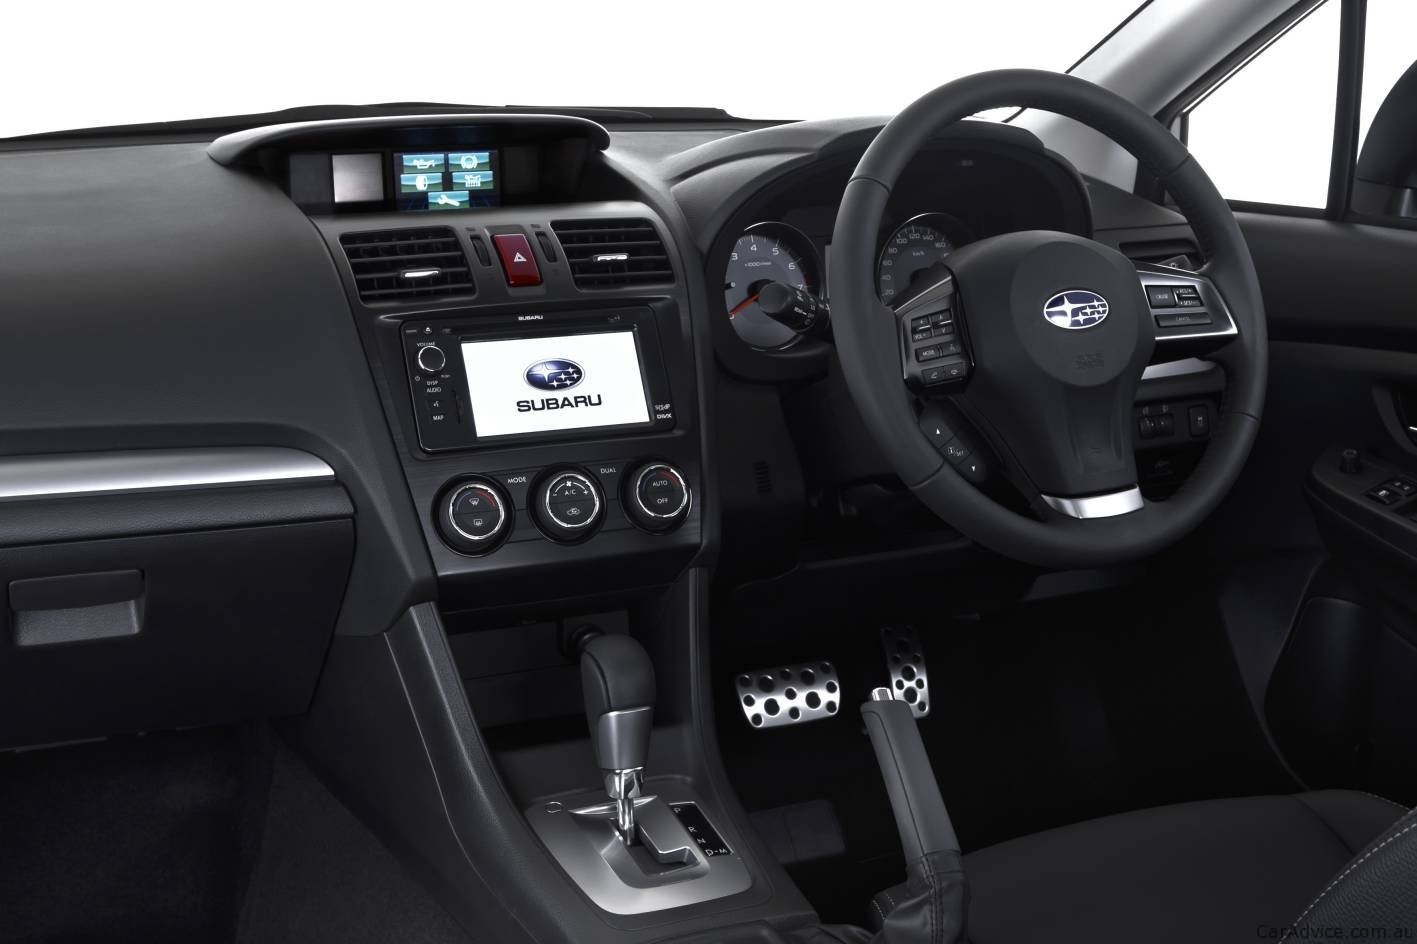 2012 subaru impreza at australian international motor show. Black Bedroom Furniture Sets. Home Design Ideas